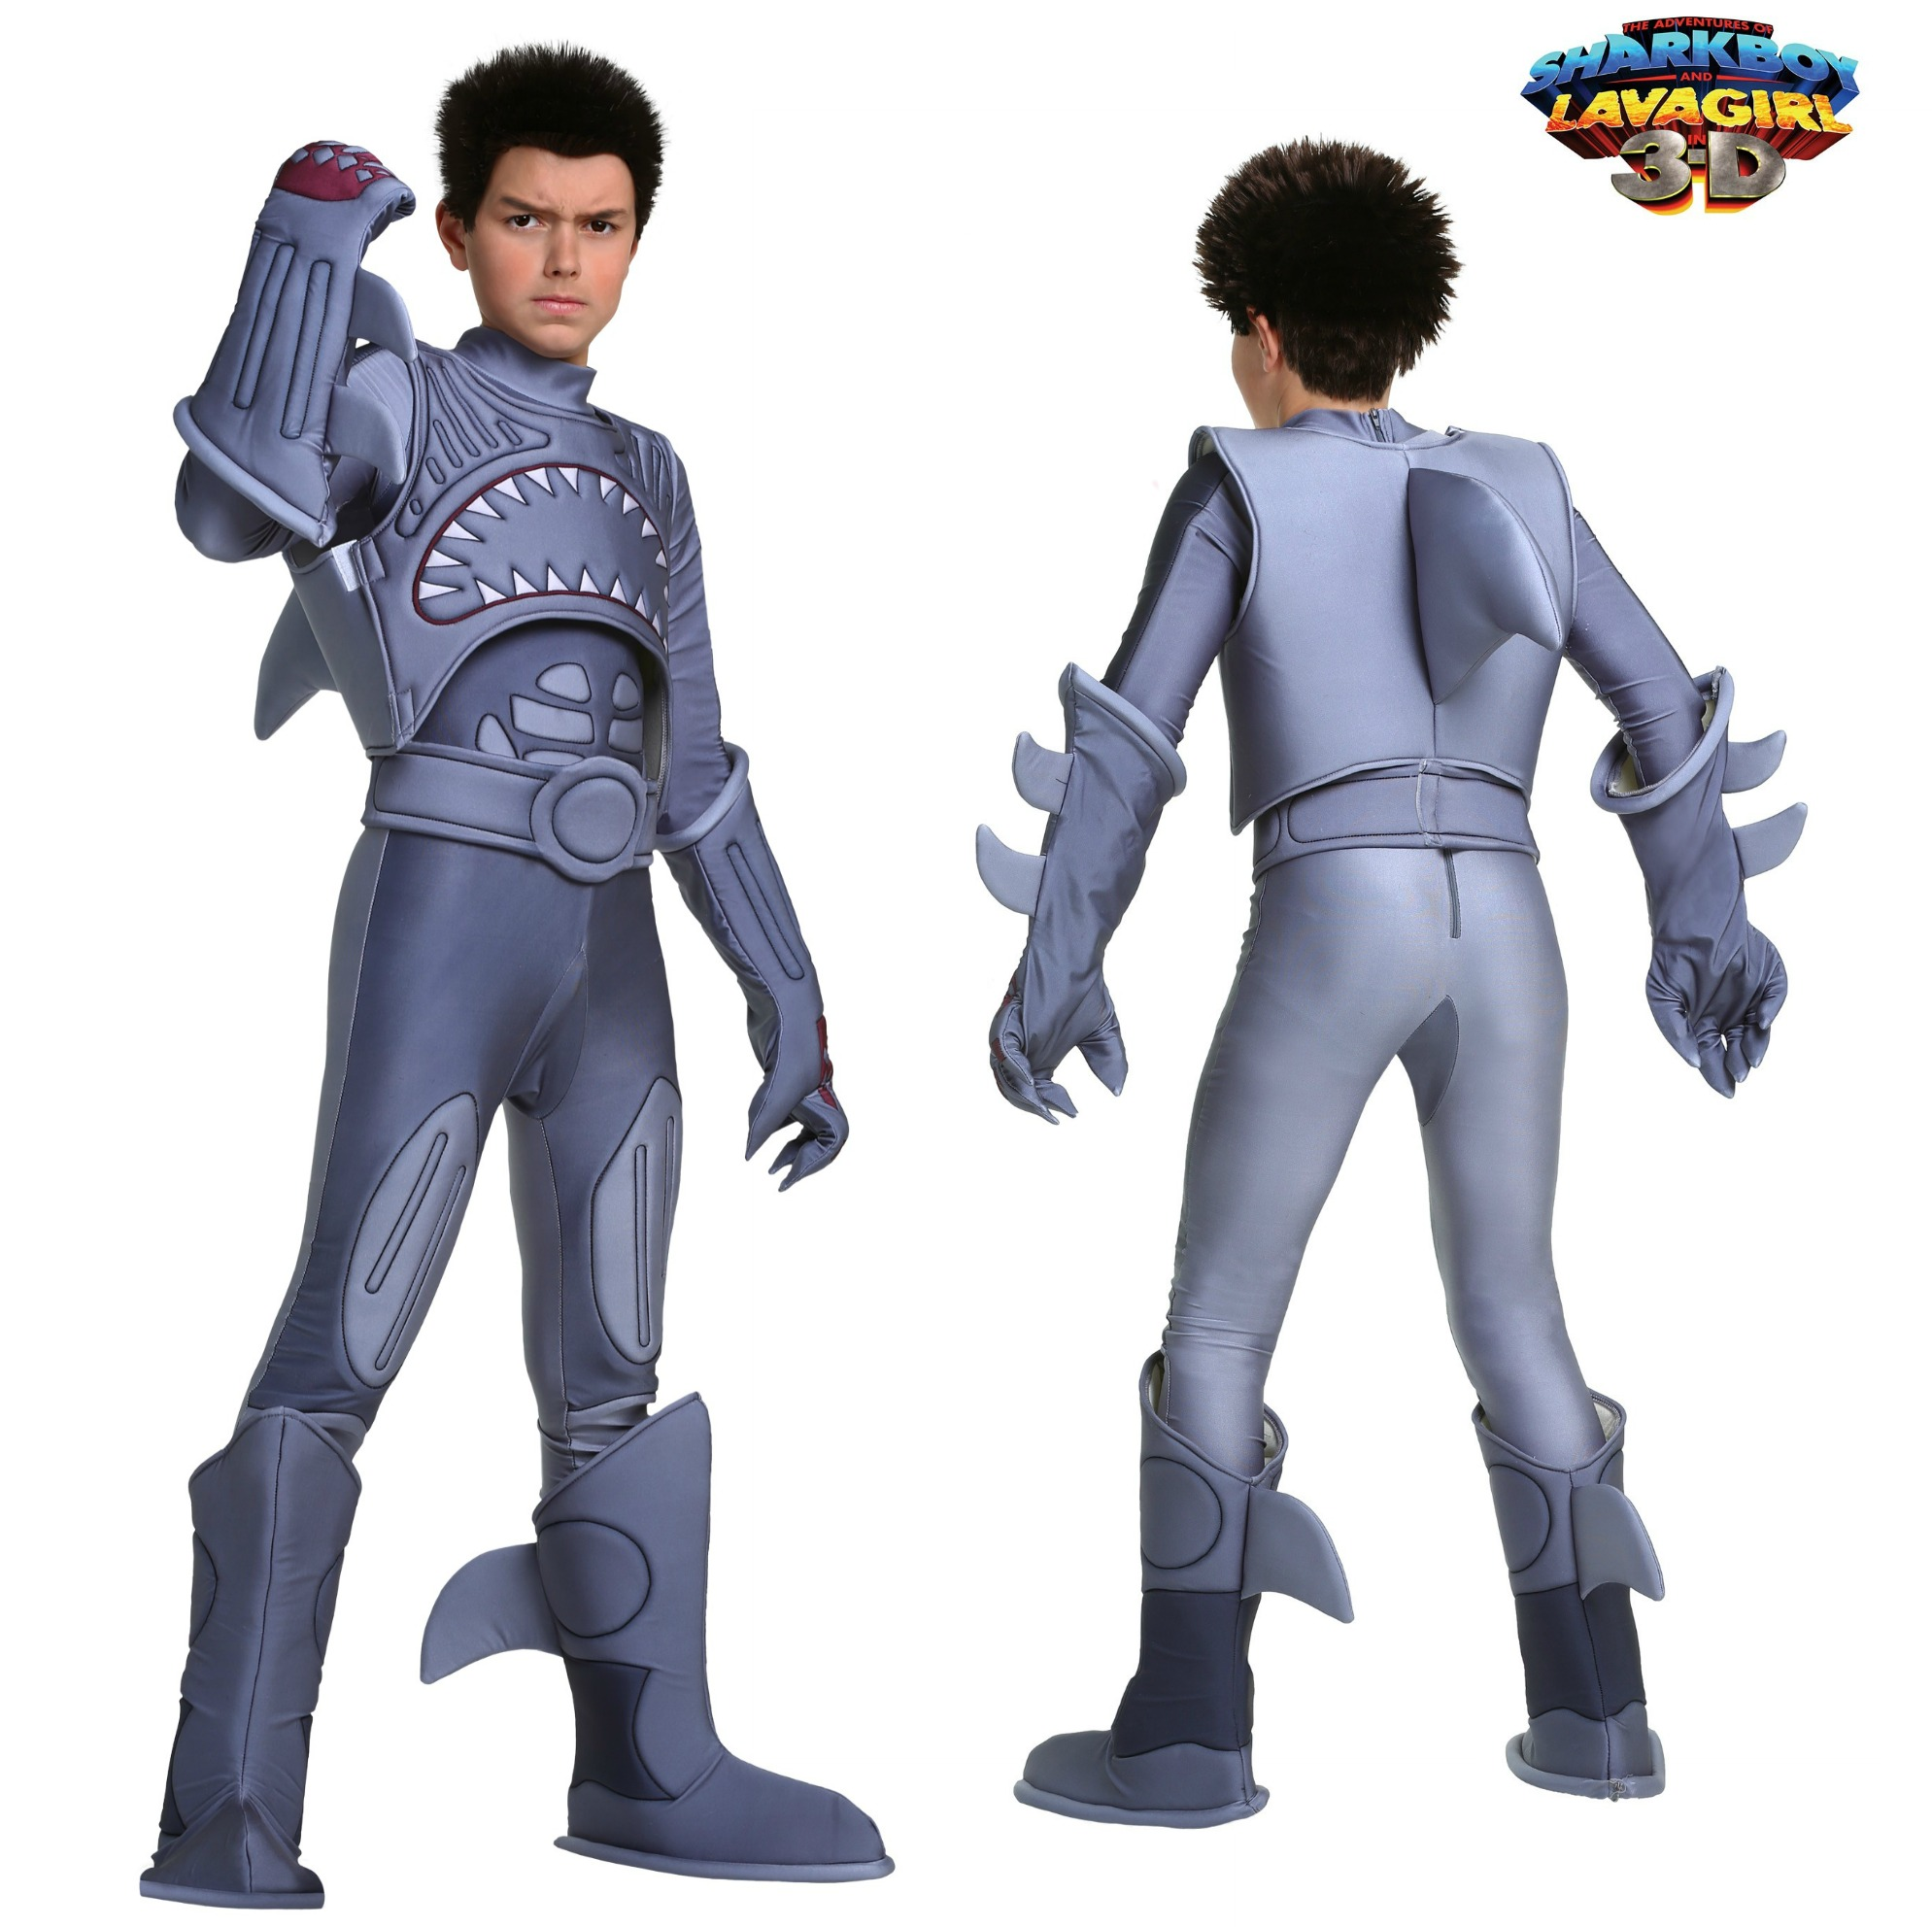 Sharkboy costume